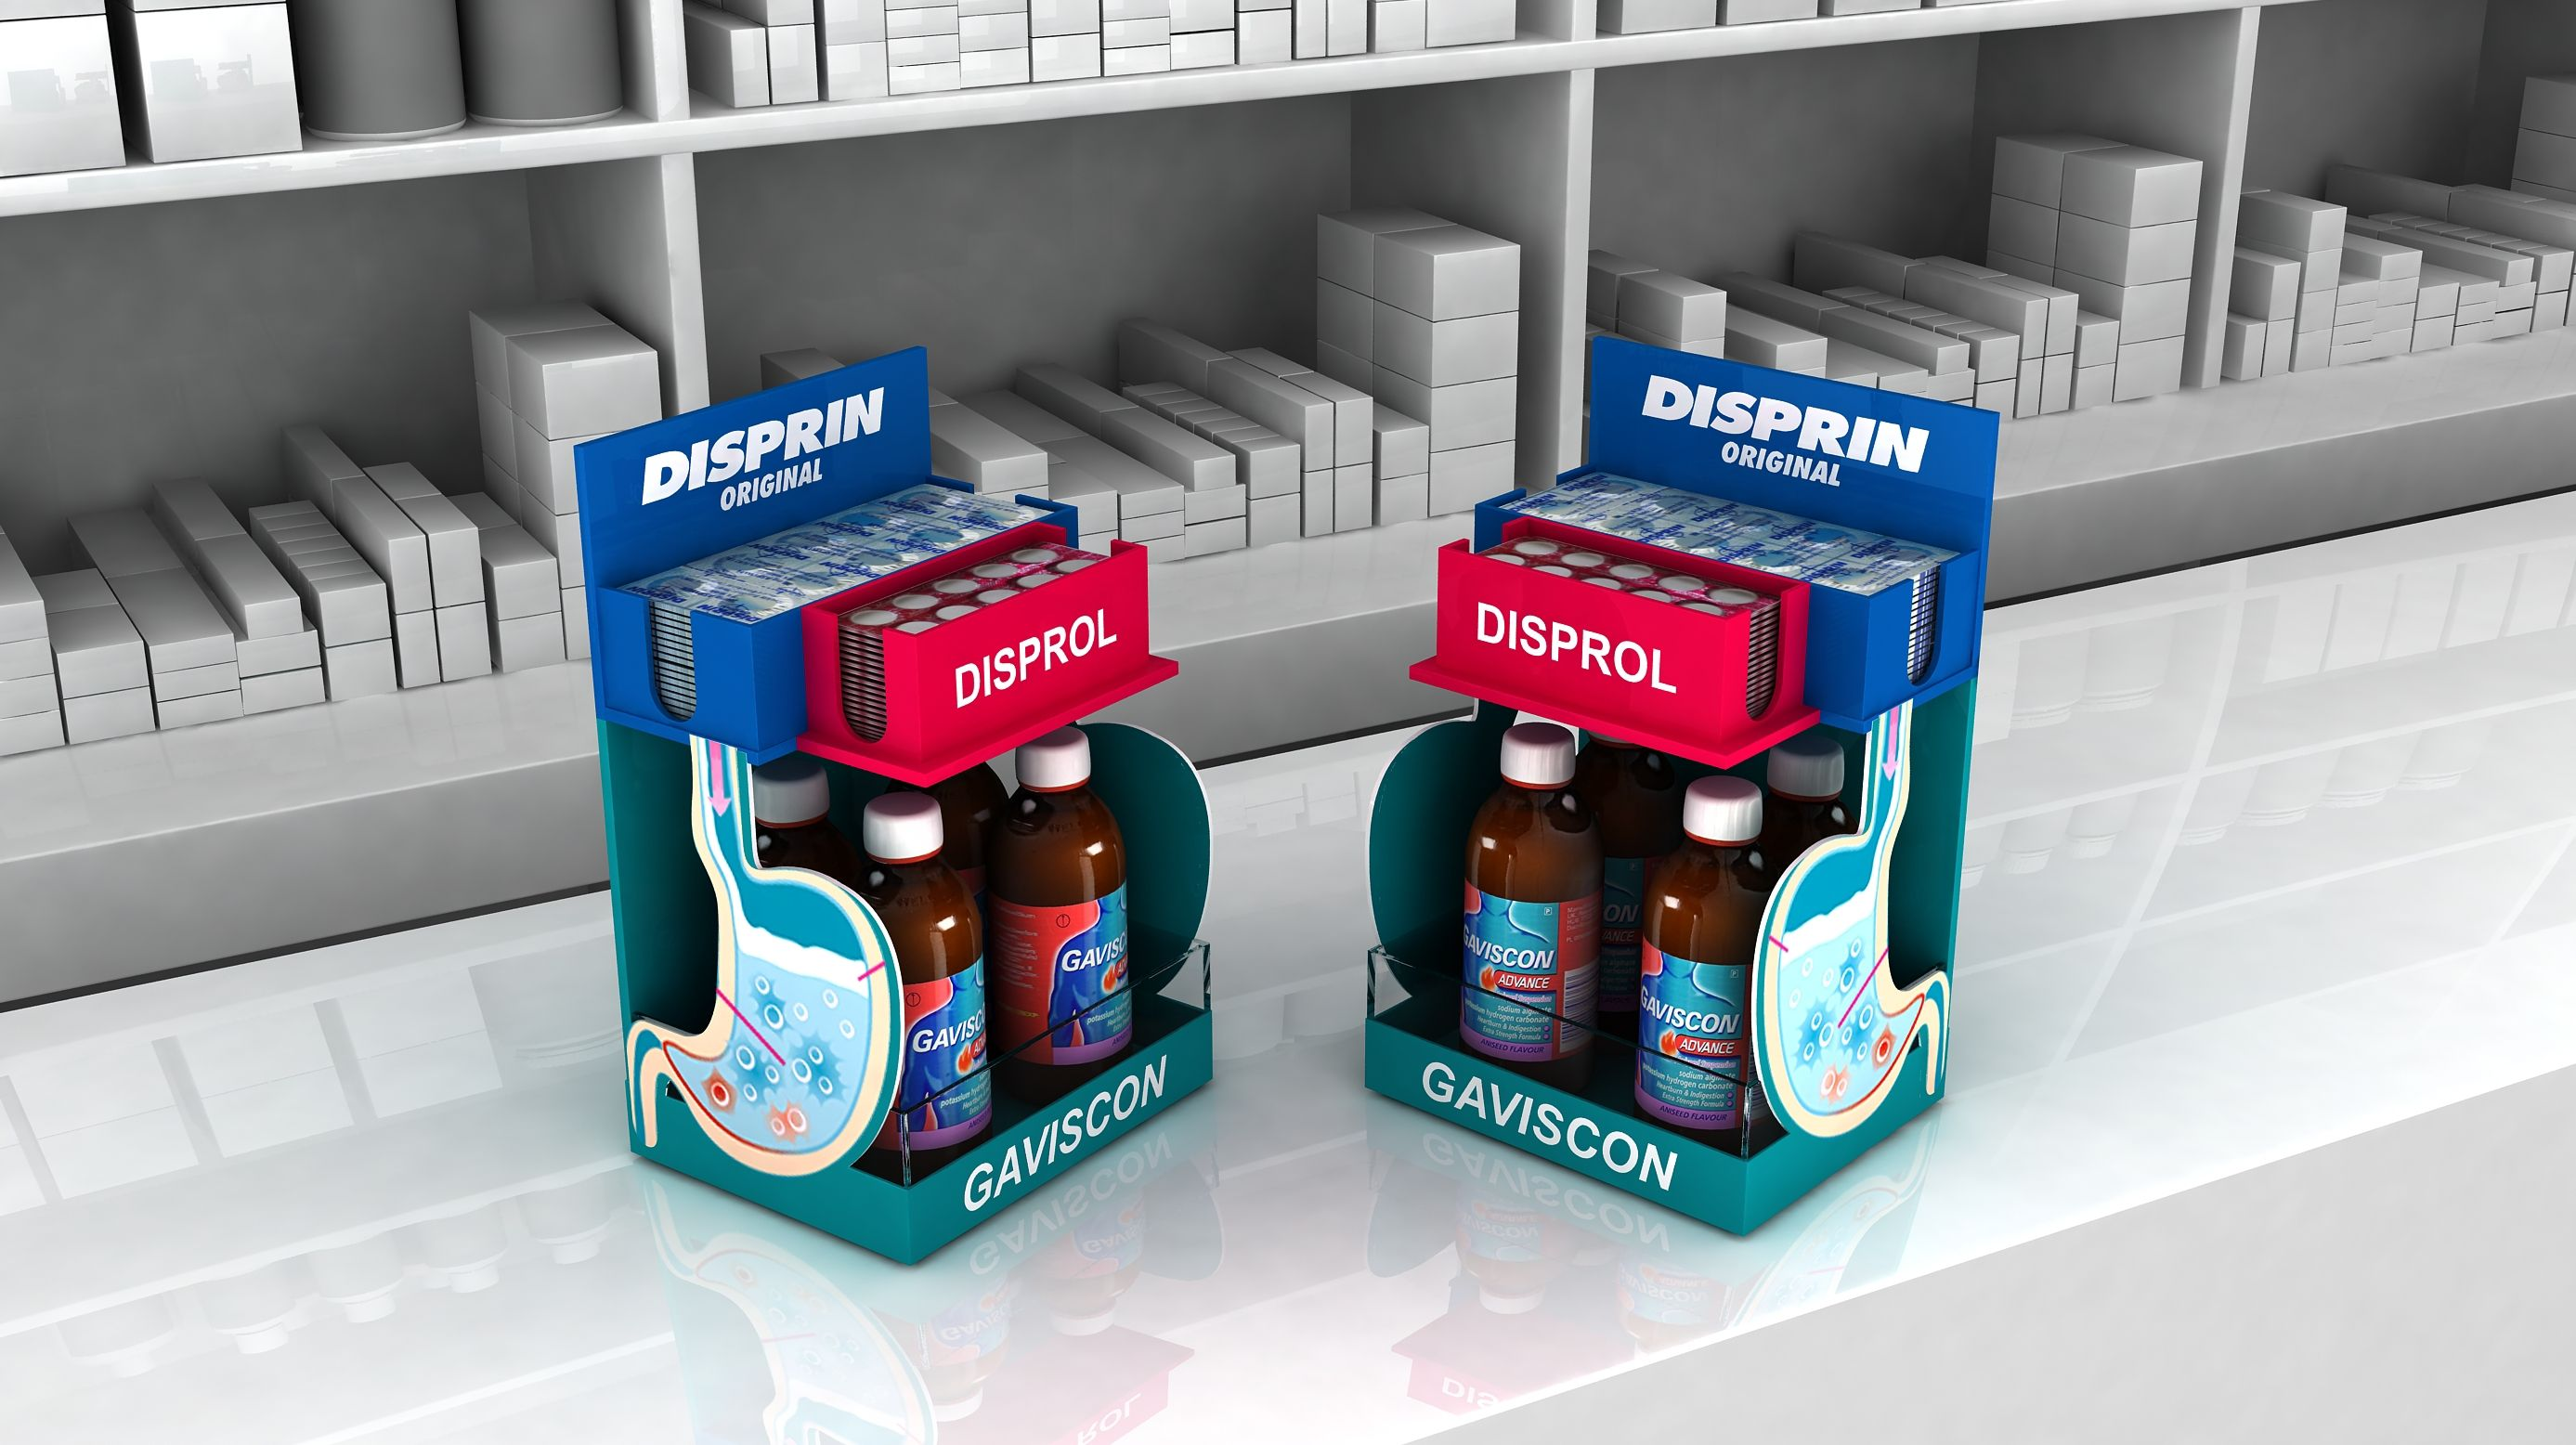 Check Out My Behance Project Disprin Disprol And Gaviscon Counter Top Https Www Behance Net Gallery 61619569 Countertops Web Design Inspiration Counter